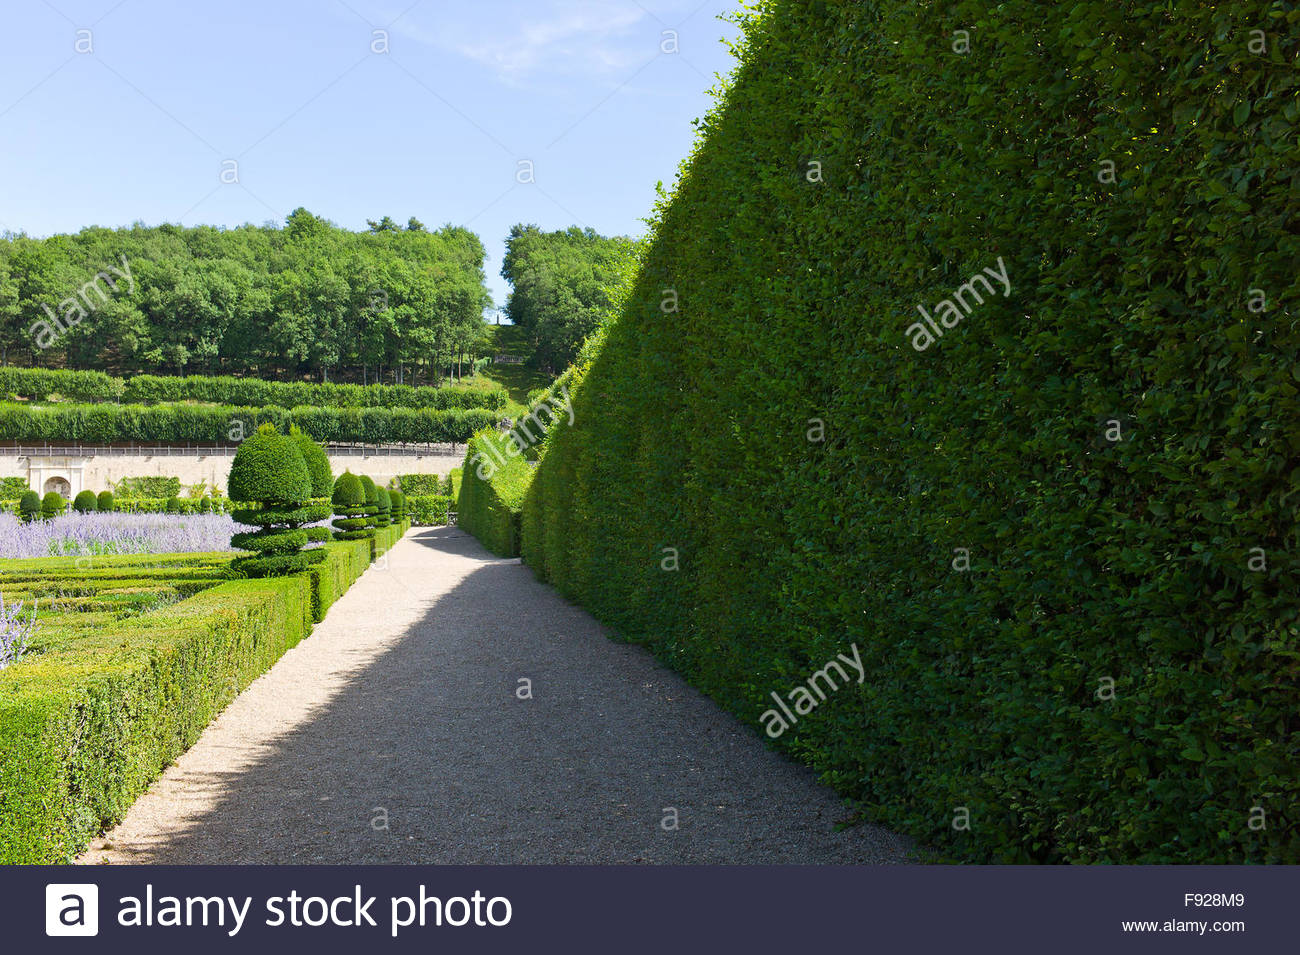 Hedges of Carpinus betulus, Buxus sempervirens and Taxus topiary at Chateau de Villandry, Loire Valley, France - Stock Image